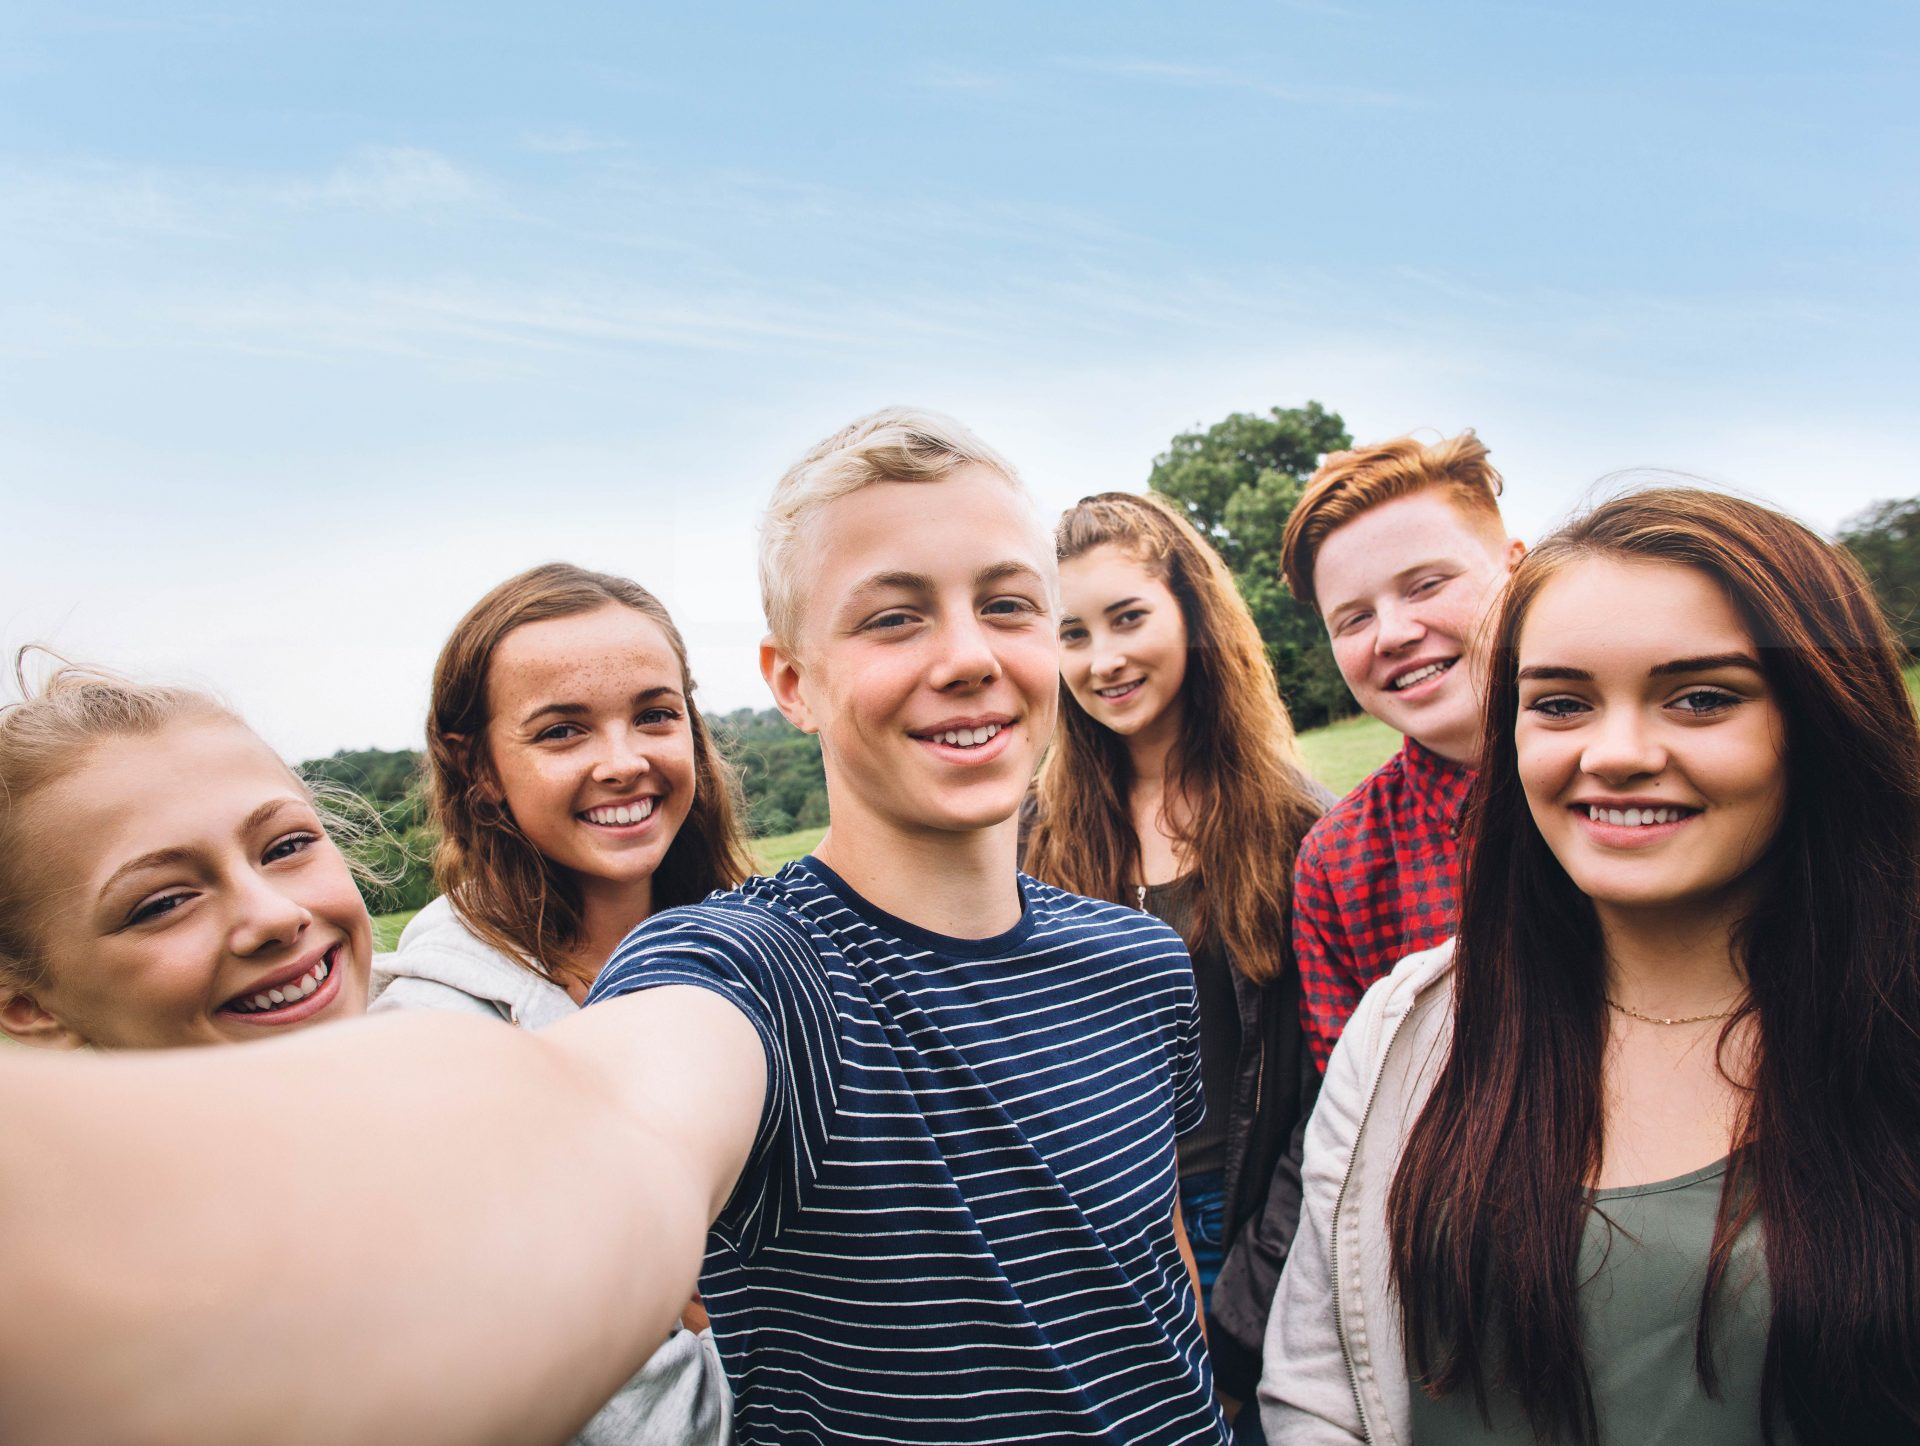 Students smiling at the camera in a group